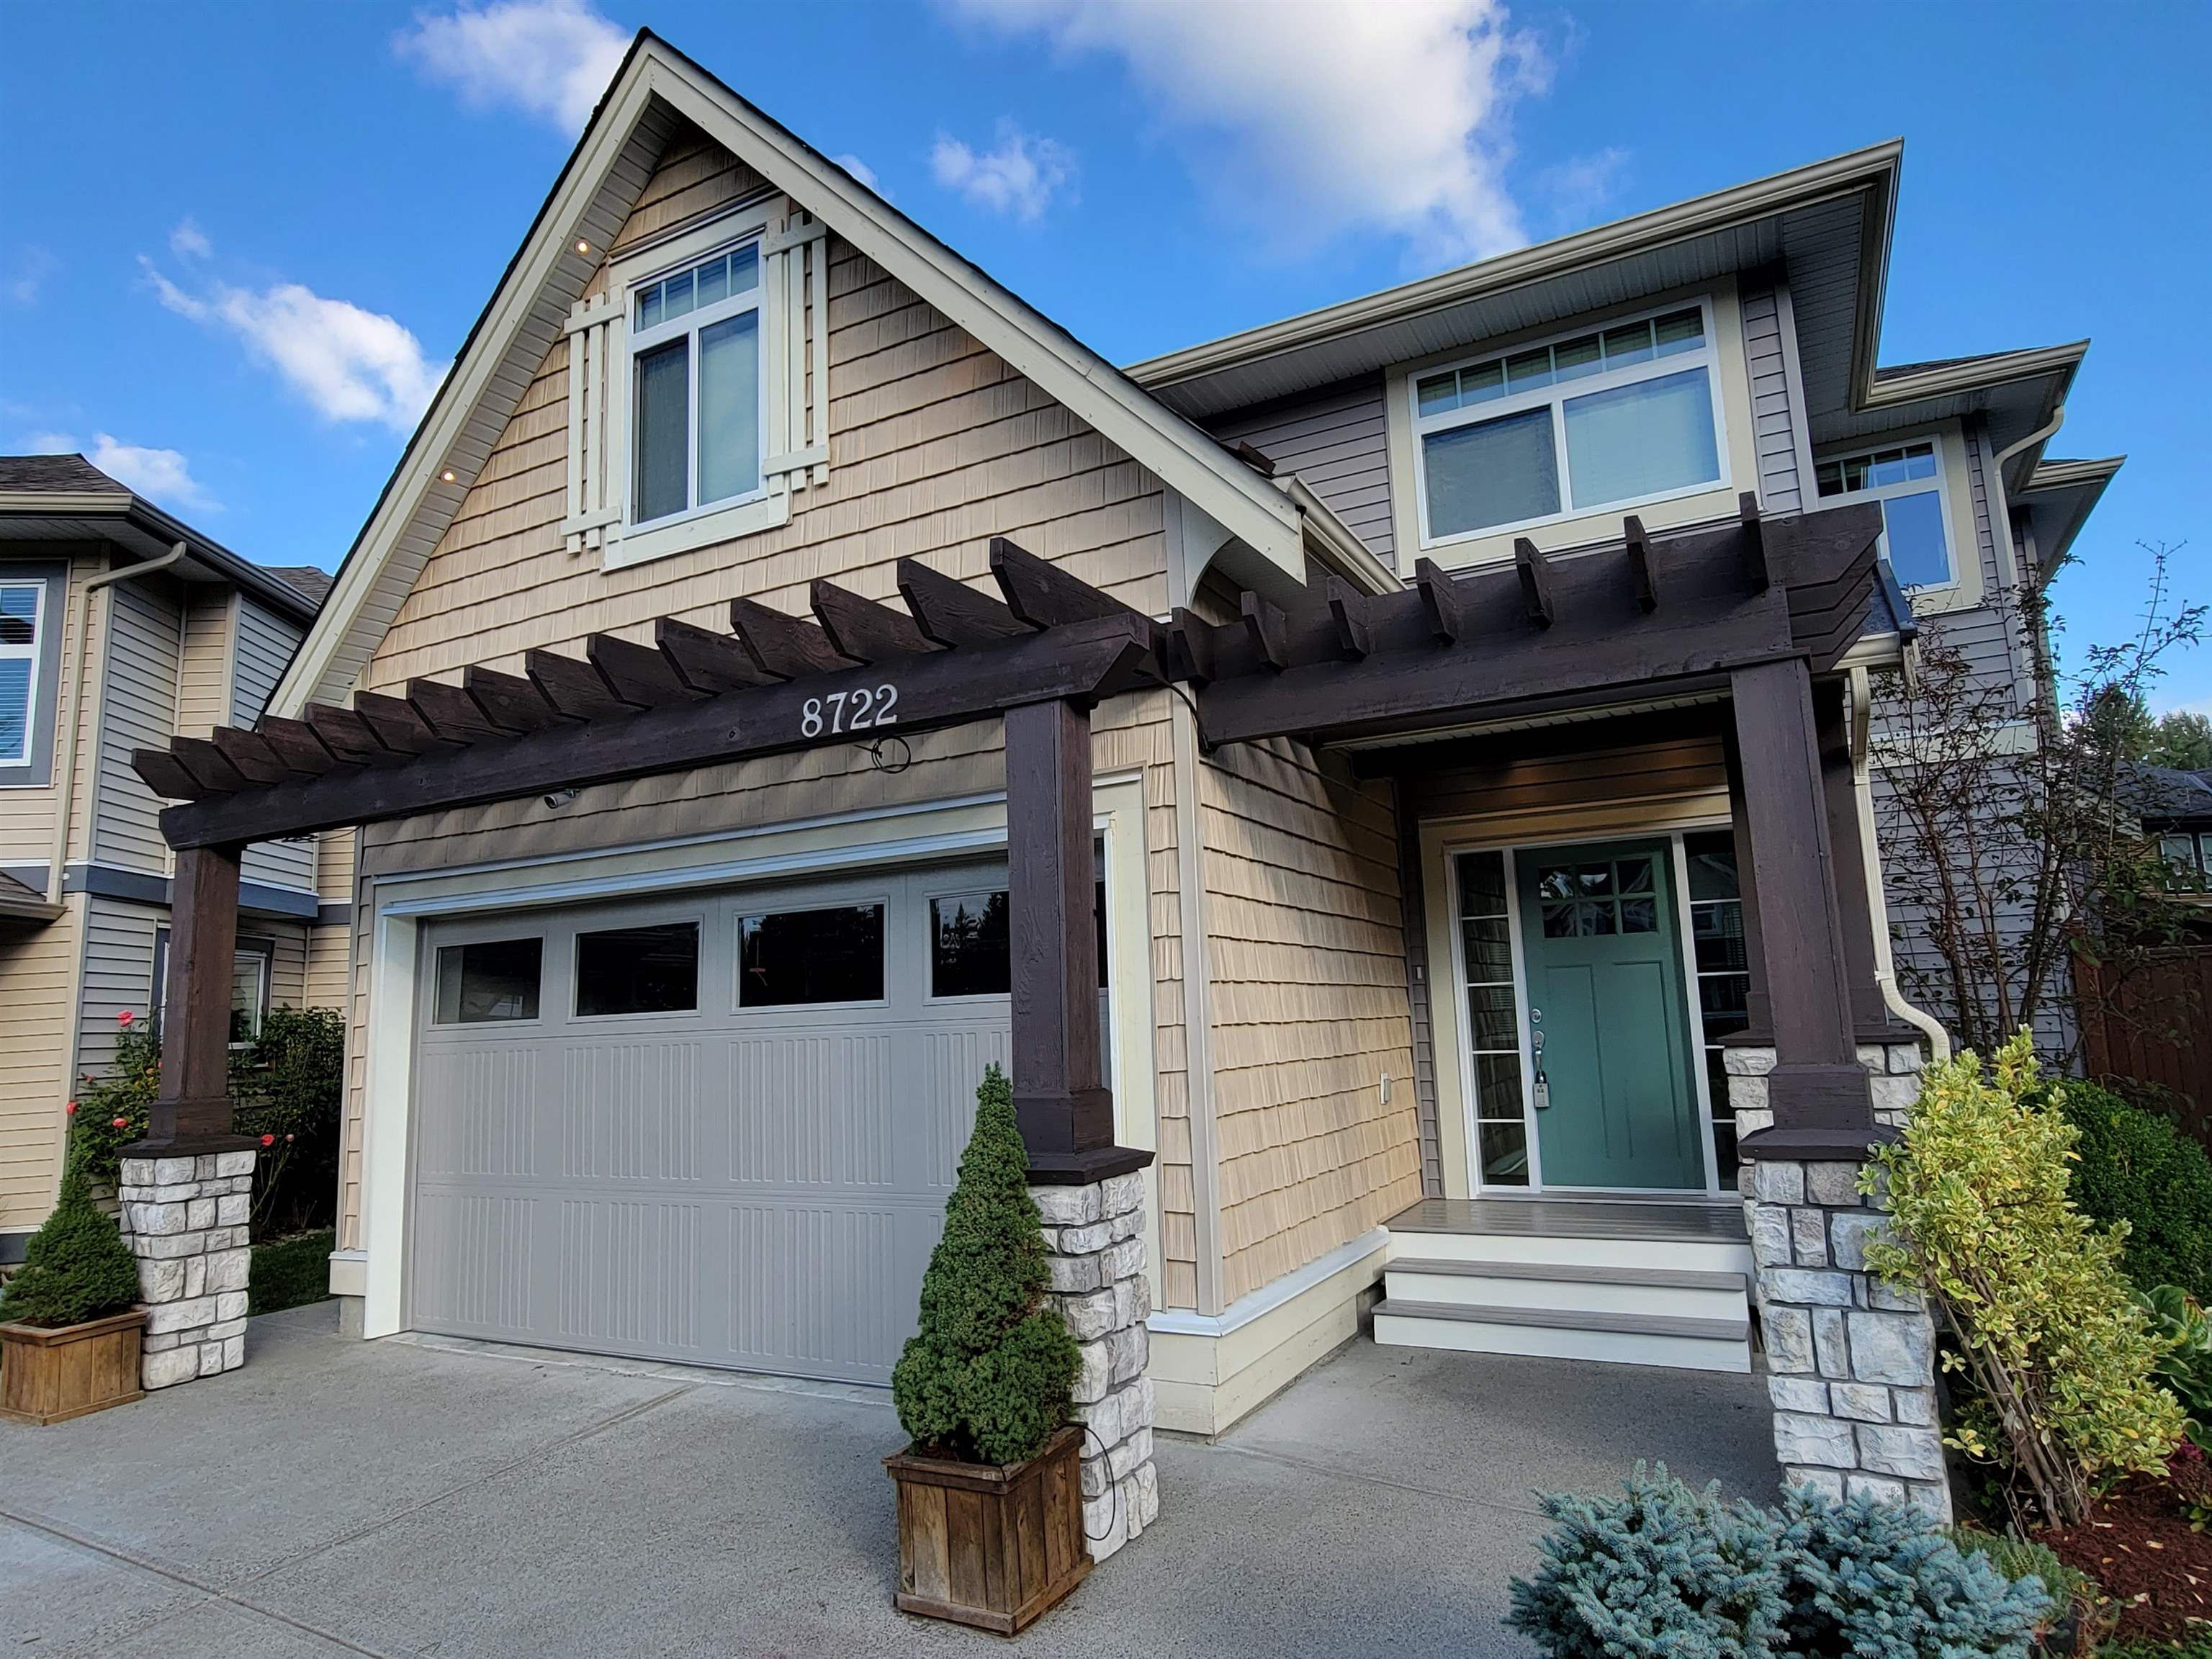 Main Photo: 8722 PARKER Court in Mission: Mission BC House for sale : MLS®# R2617456